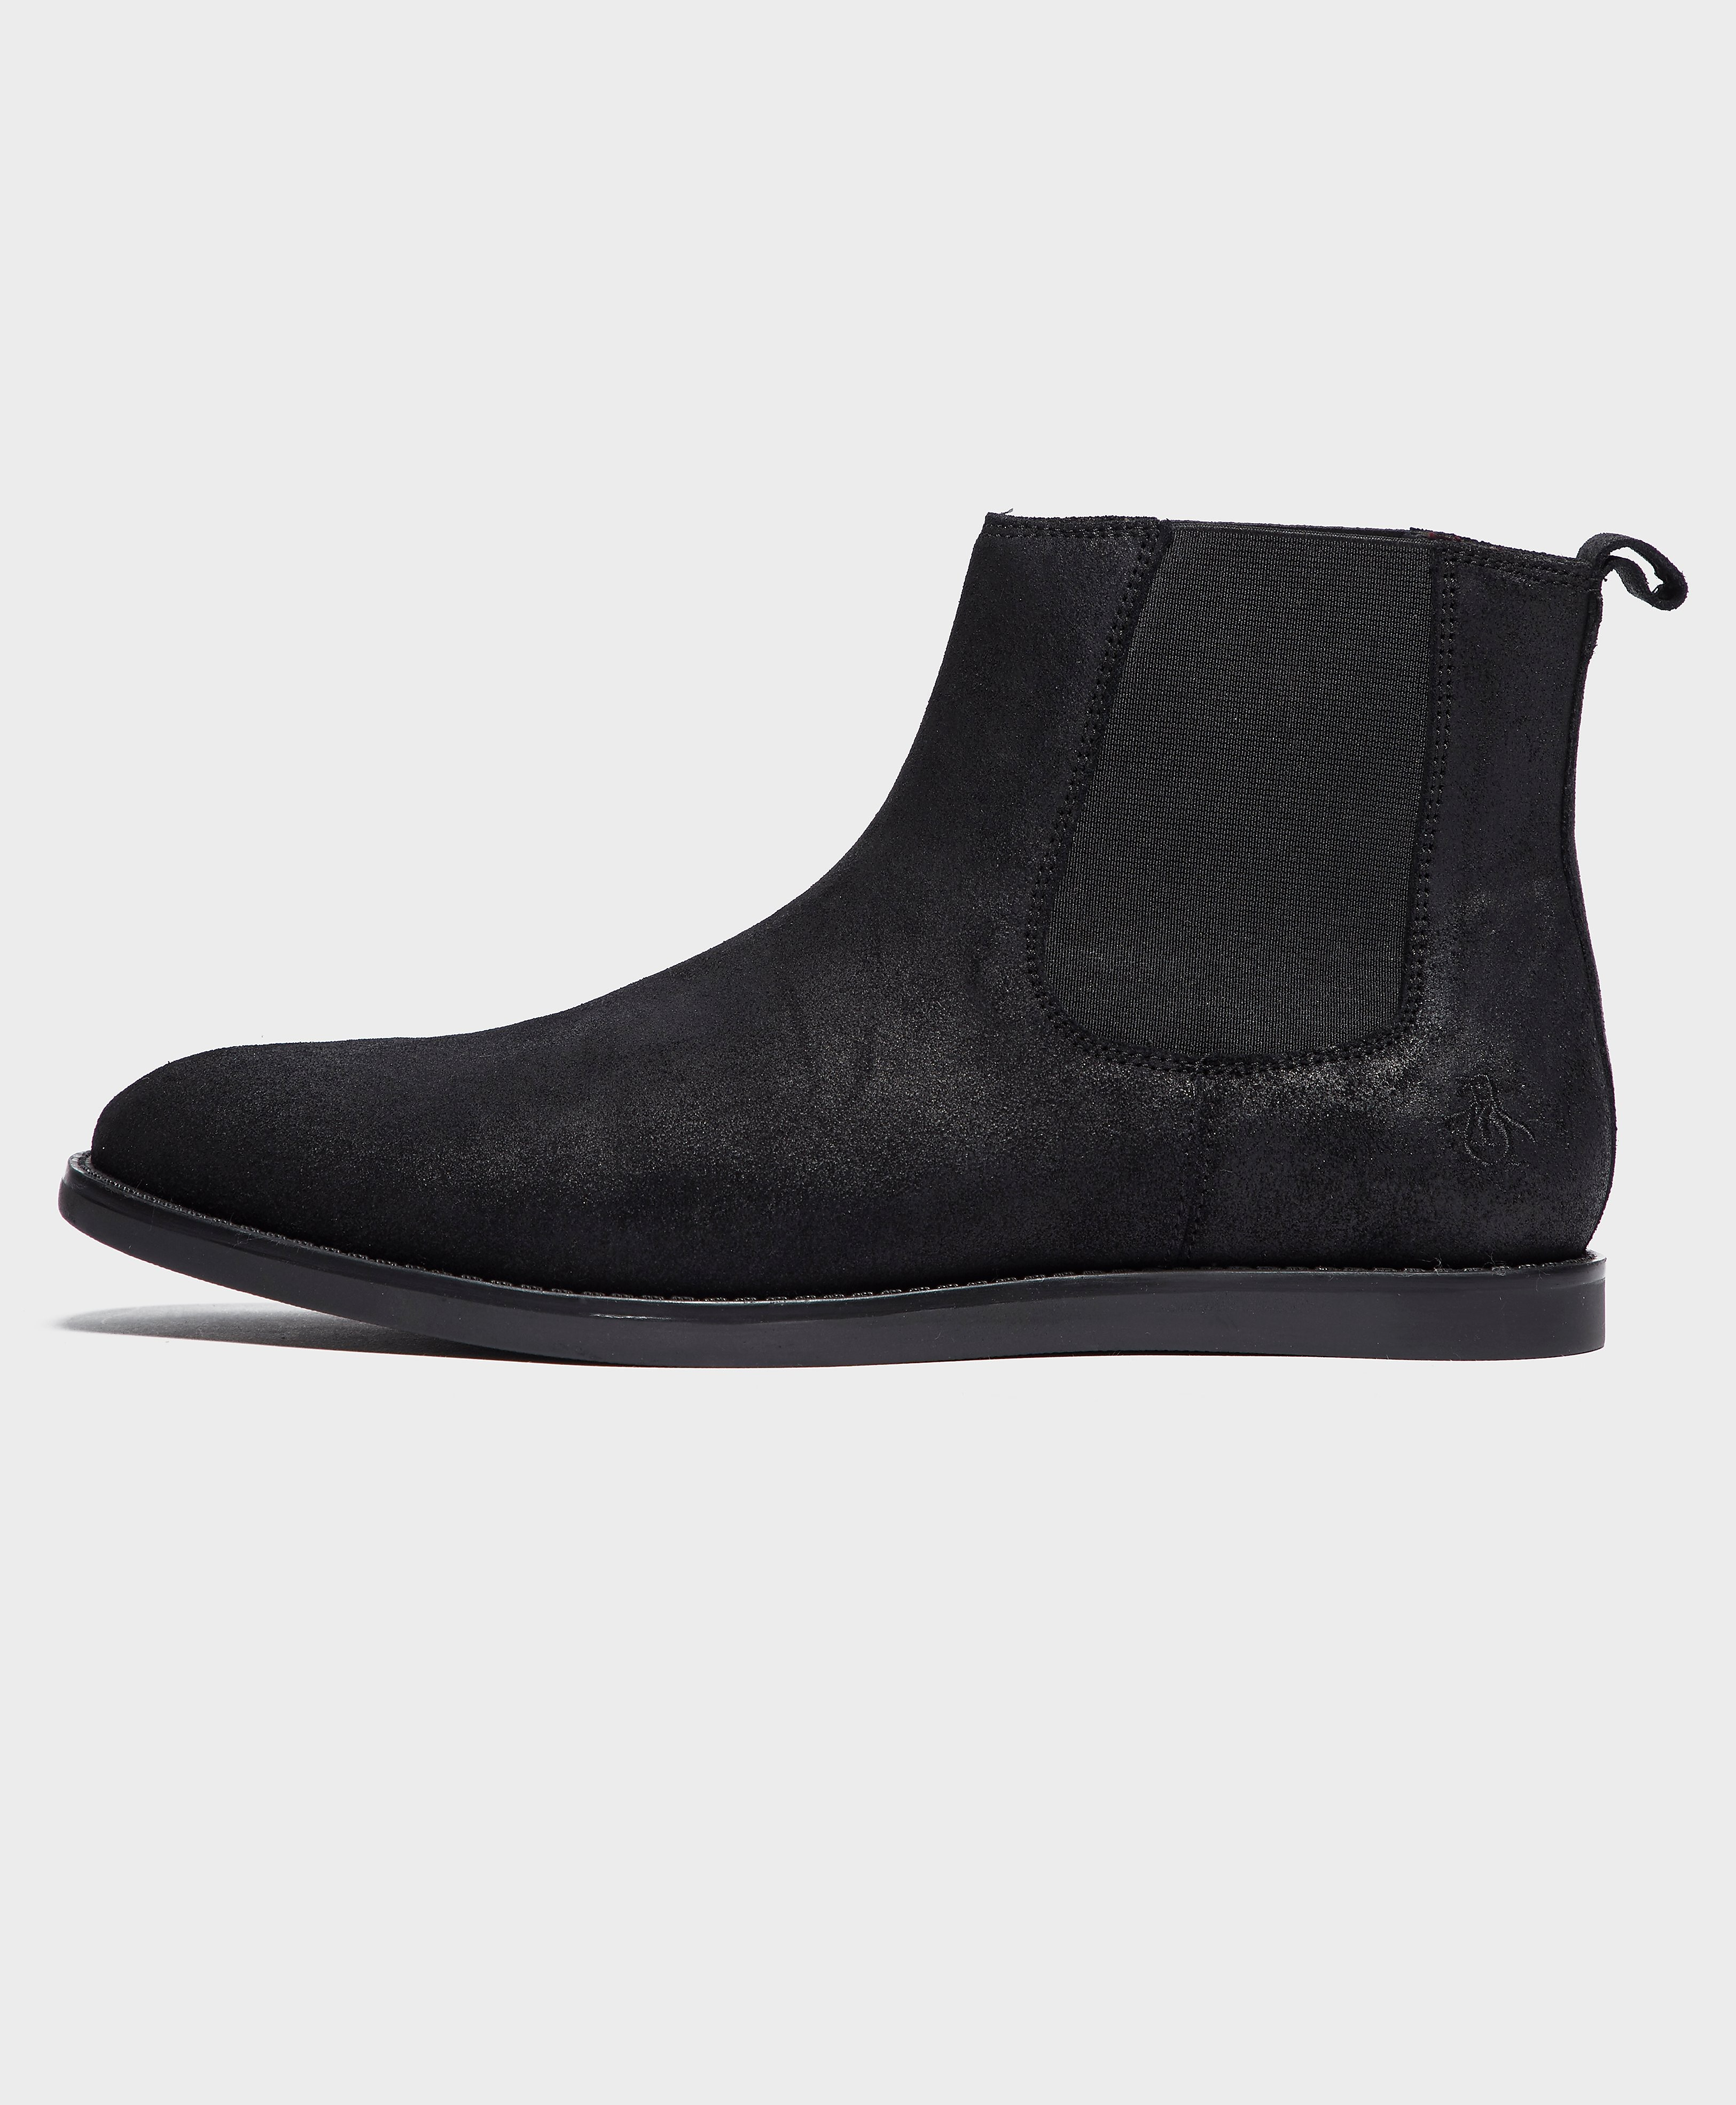 Product description Item No. UJHGGT From Penguin, these trainers are ideal for versatile off-duty styling. Presenting a textured upper with contrasting inserts, they feature secure lace fastenings and are finished with logo detailing.